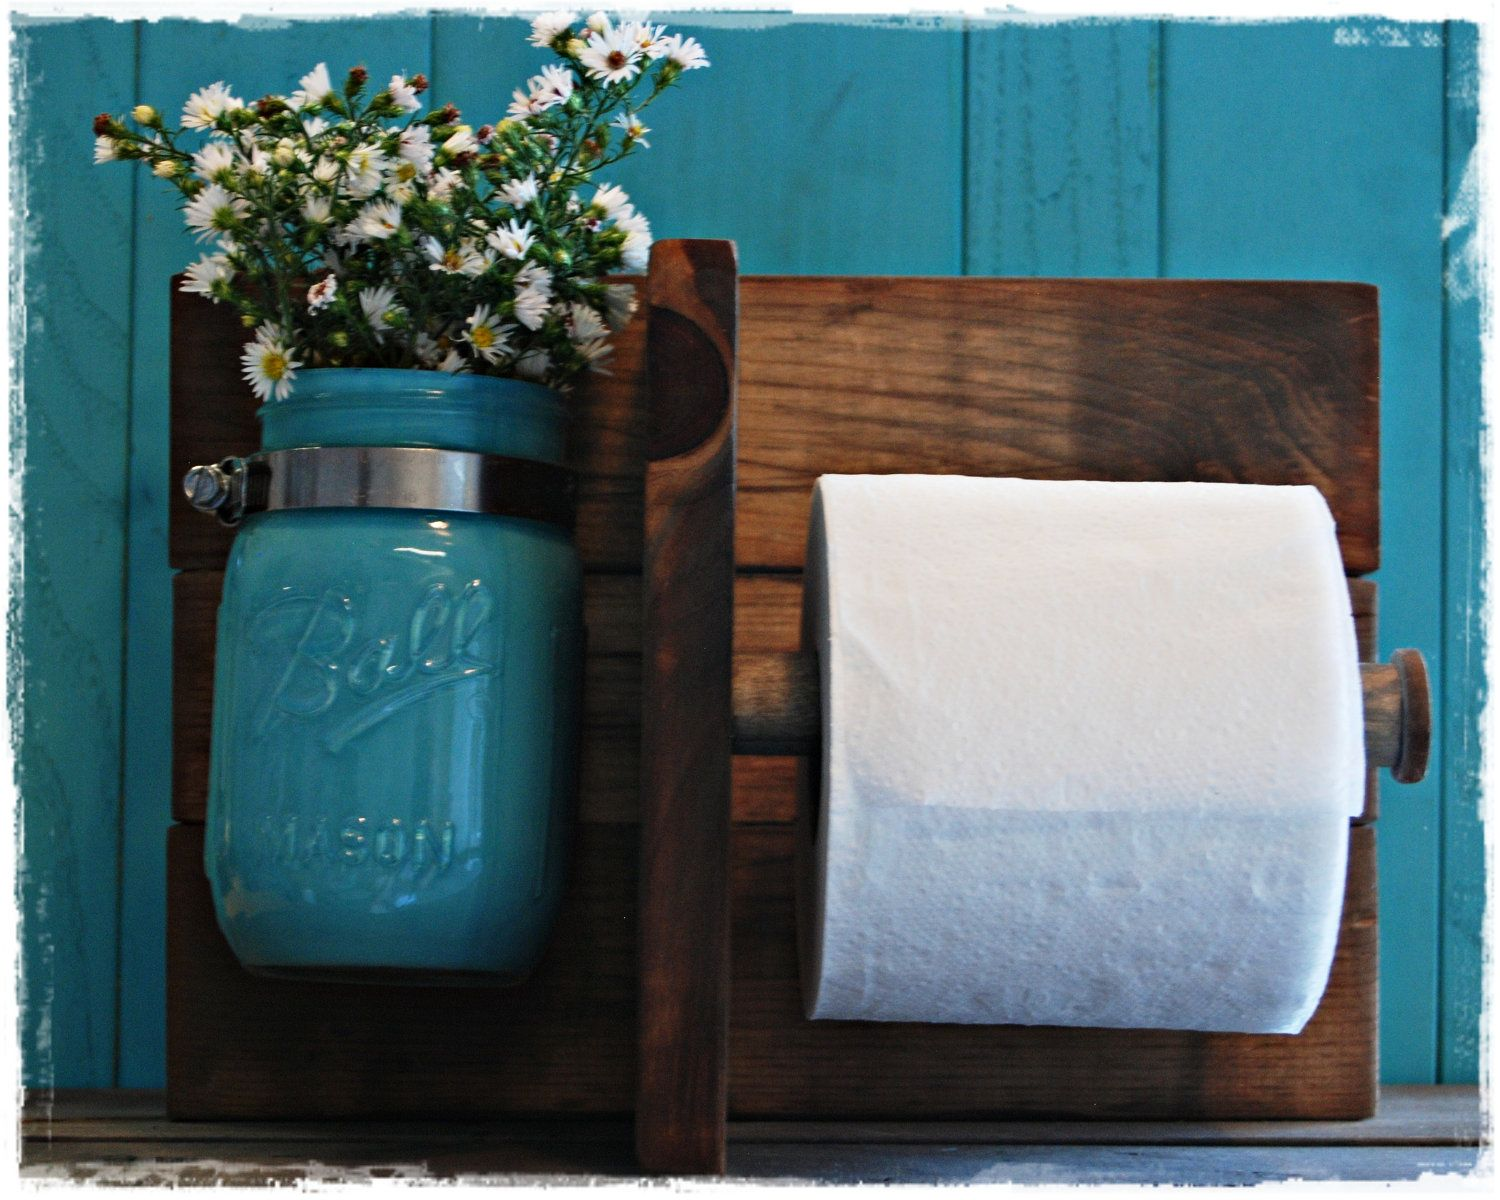 rustic toilet paper holder make the potty room smell good with flowers - Diy Toilettenpapierhalter Stand